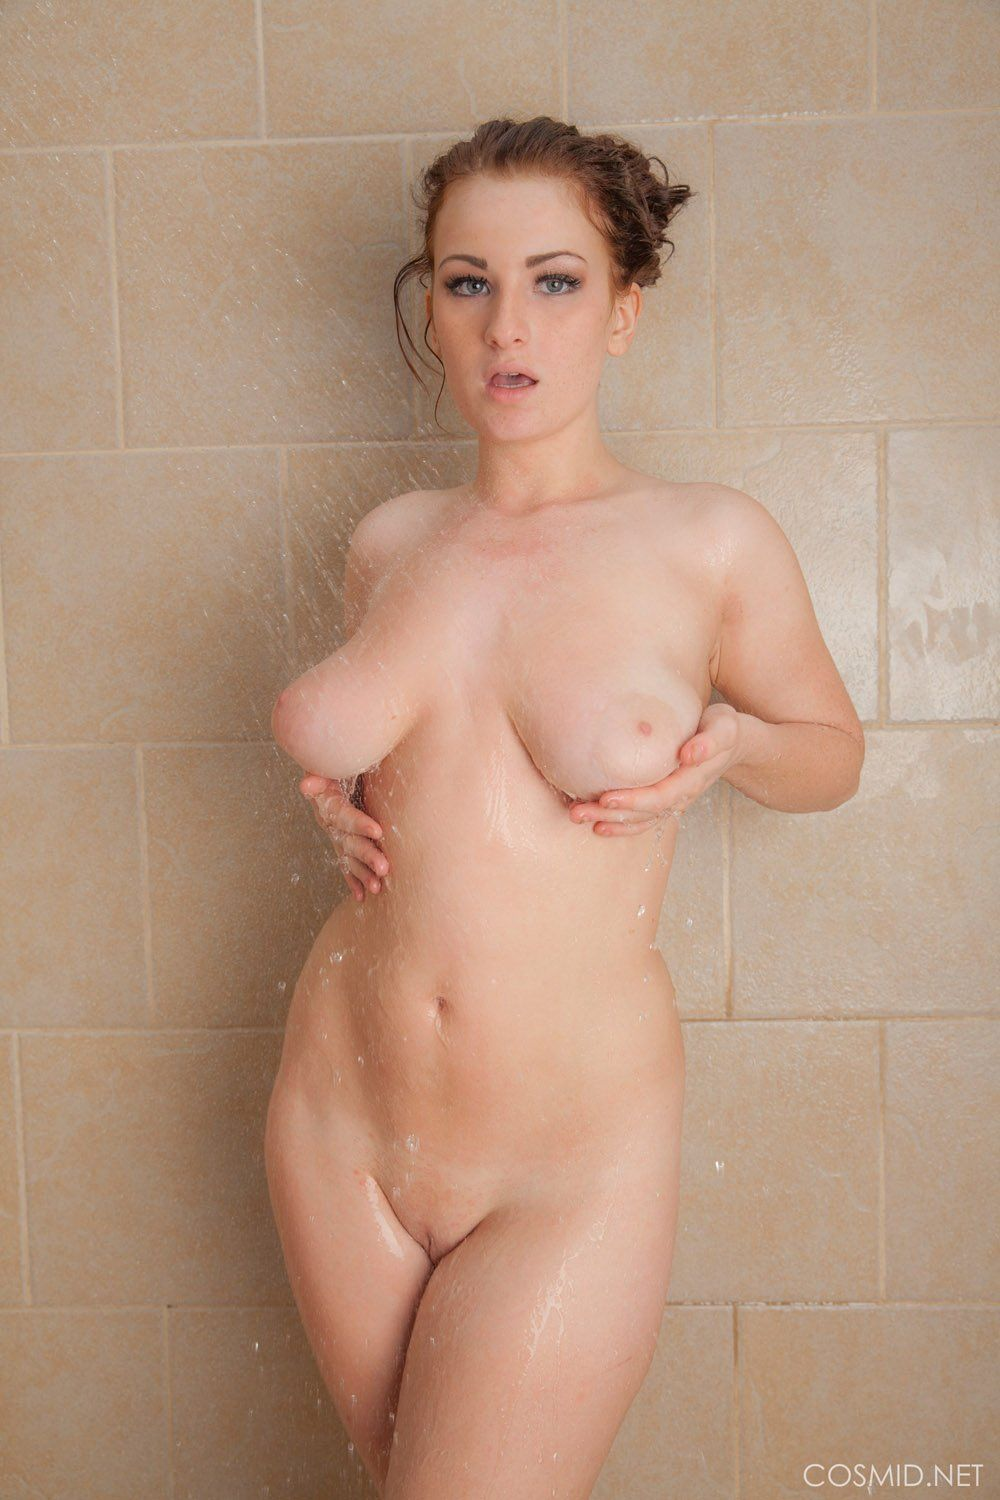 Girls Getting Naked In The Shower Porn Galleries Comments